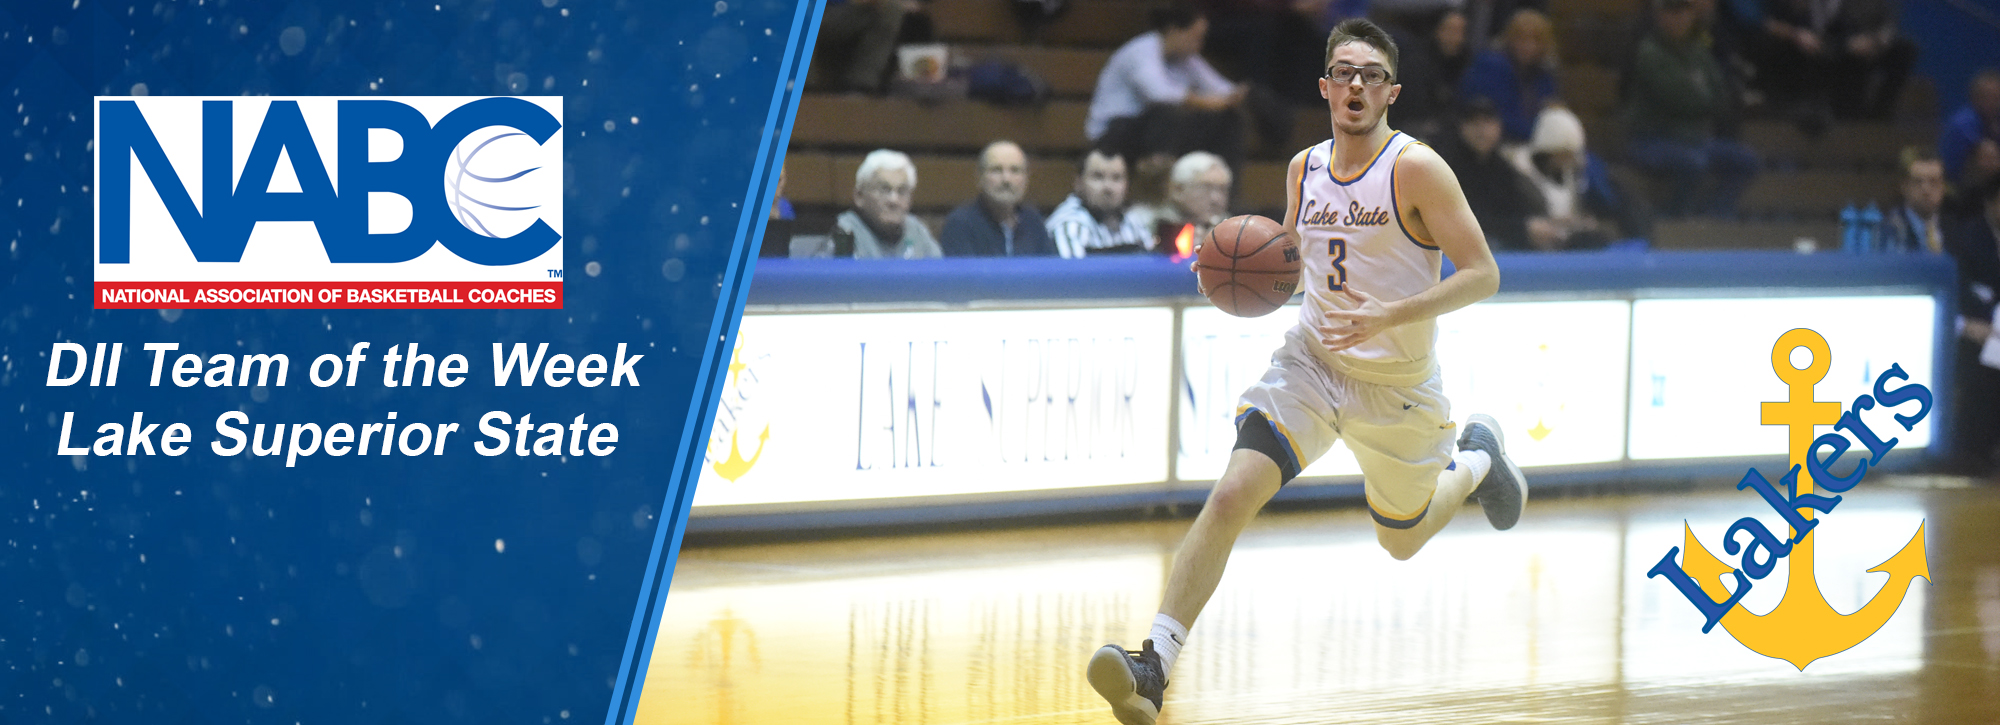 LSSU men's basketball is NABC DII Team of the Week